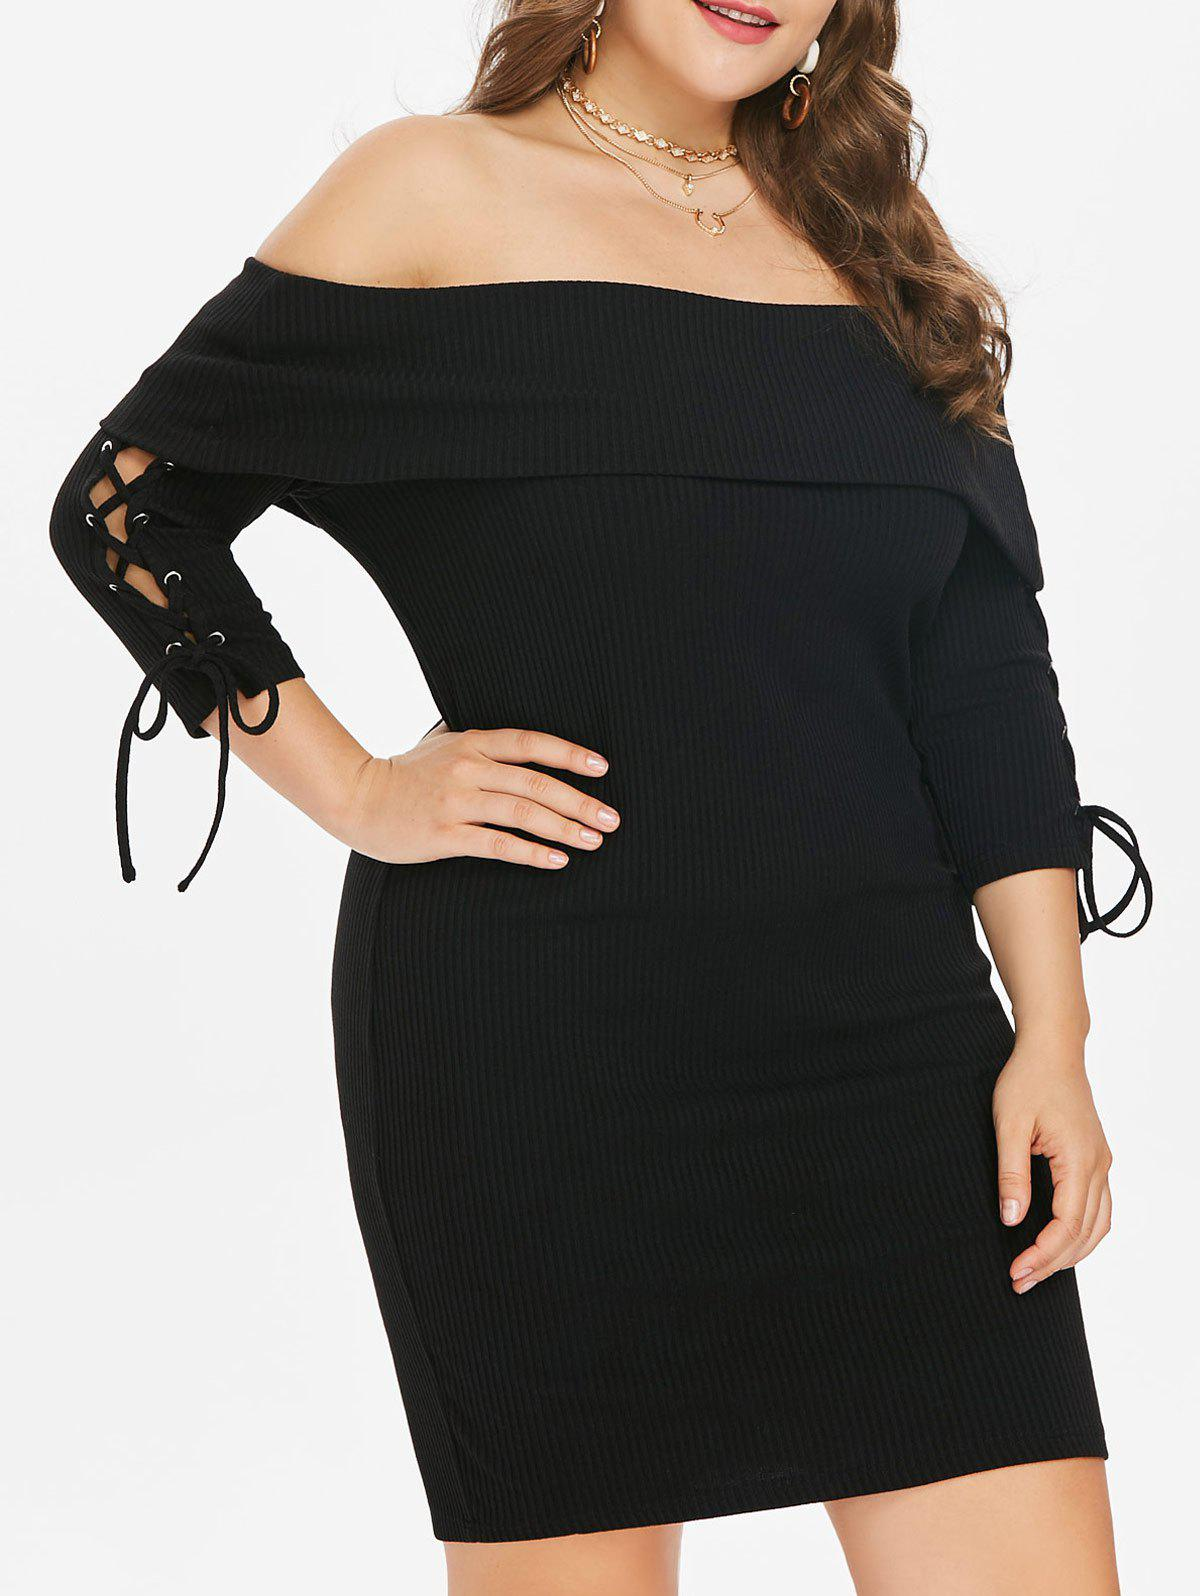 Lace Up Sleeve Plus Size Mini Bodycon Dress - BLACK 4X